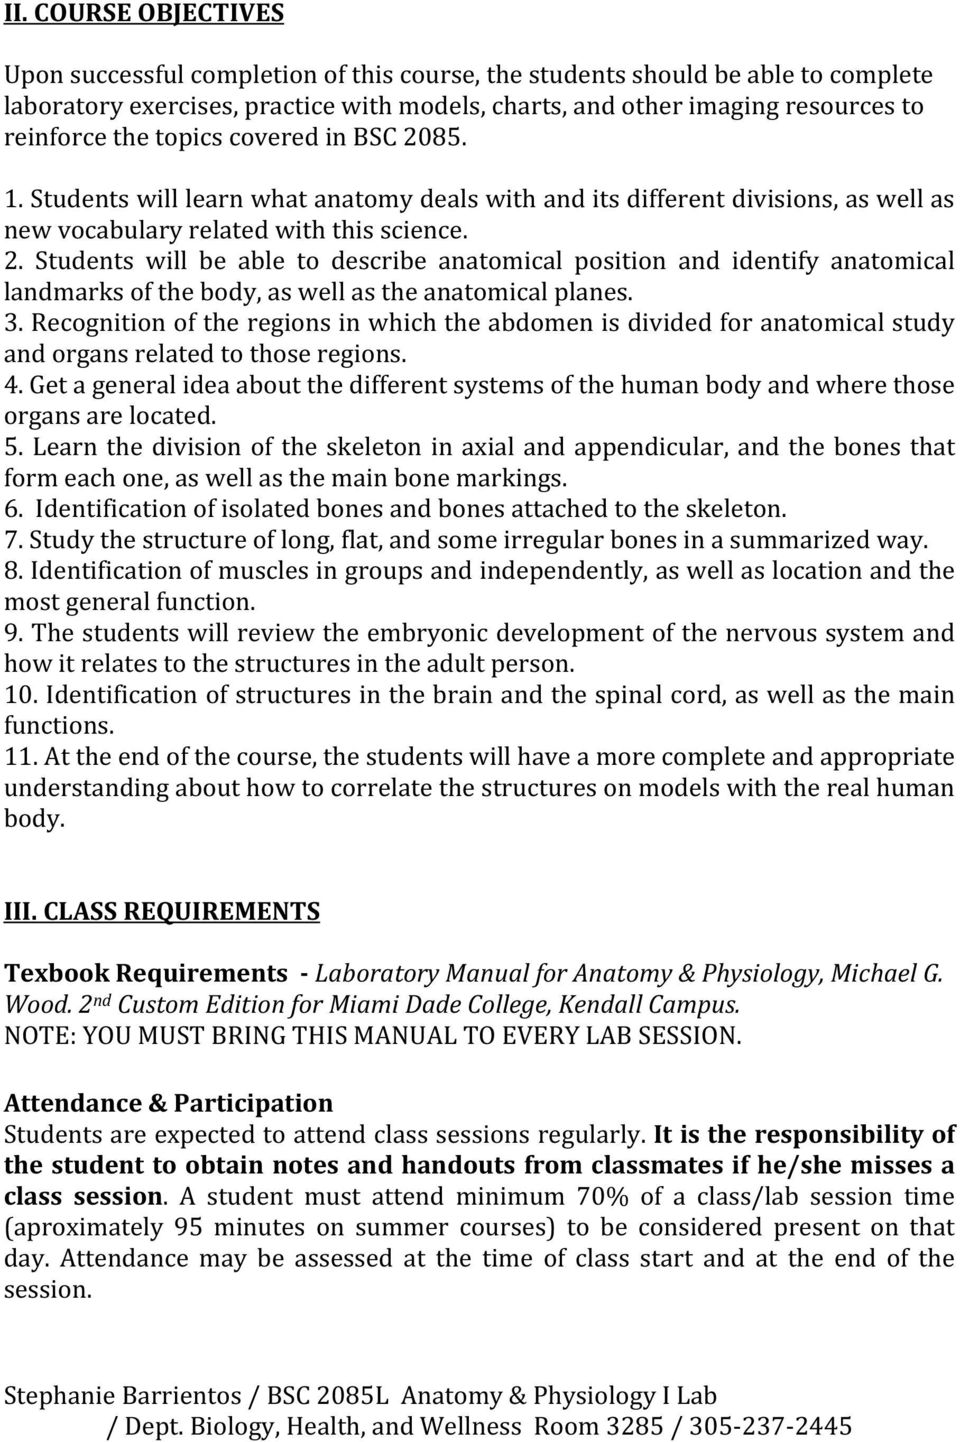 Miami-Dade College Kendall Campus COURSE SYLLABUS BSC2085L: Anatomy ...